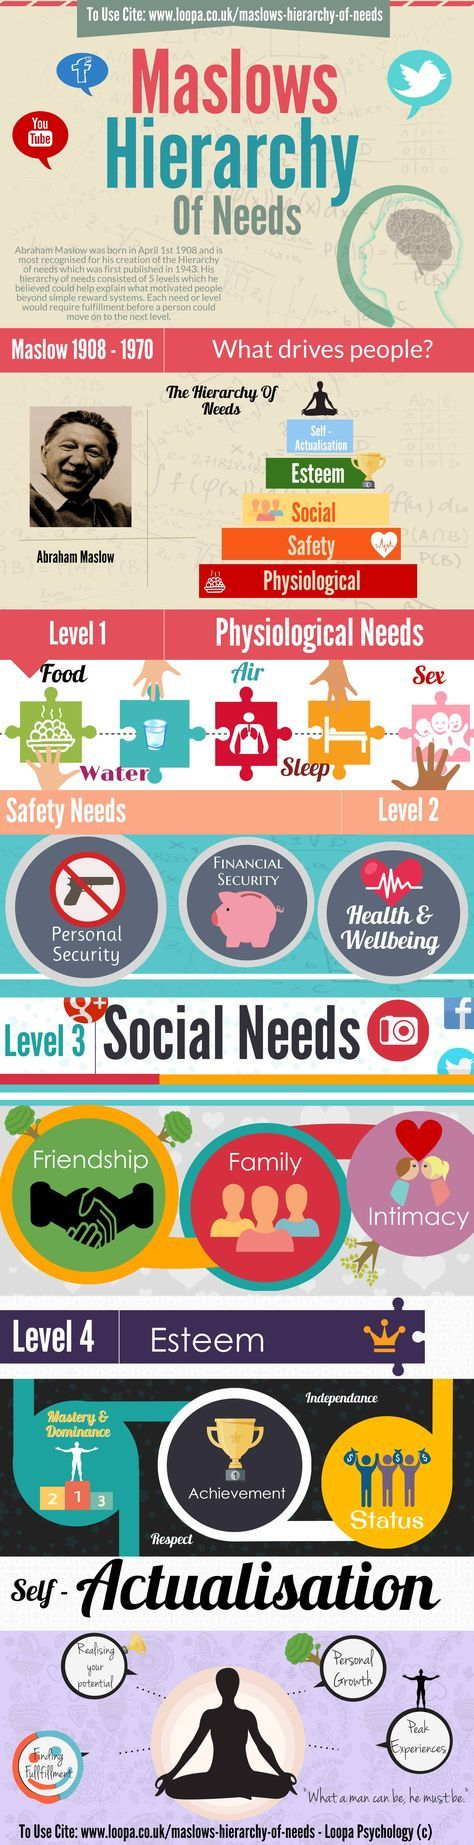 Understanding Maslow's hierarchy of needs. An essential part of self care & wellbeing